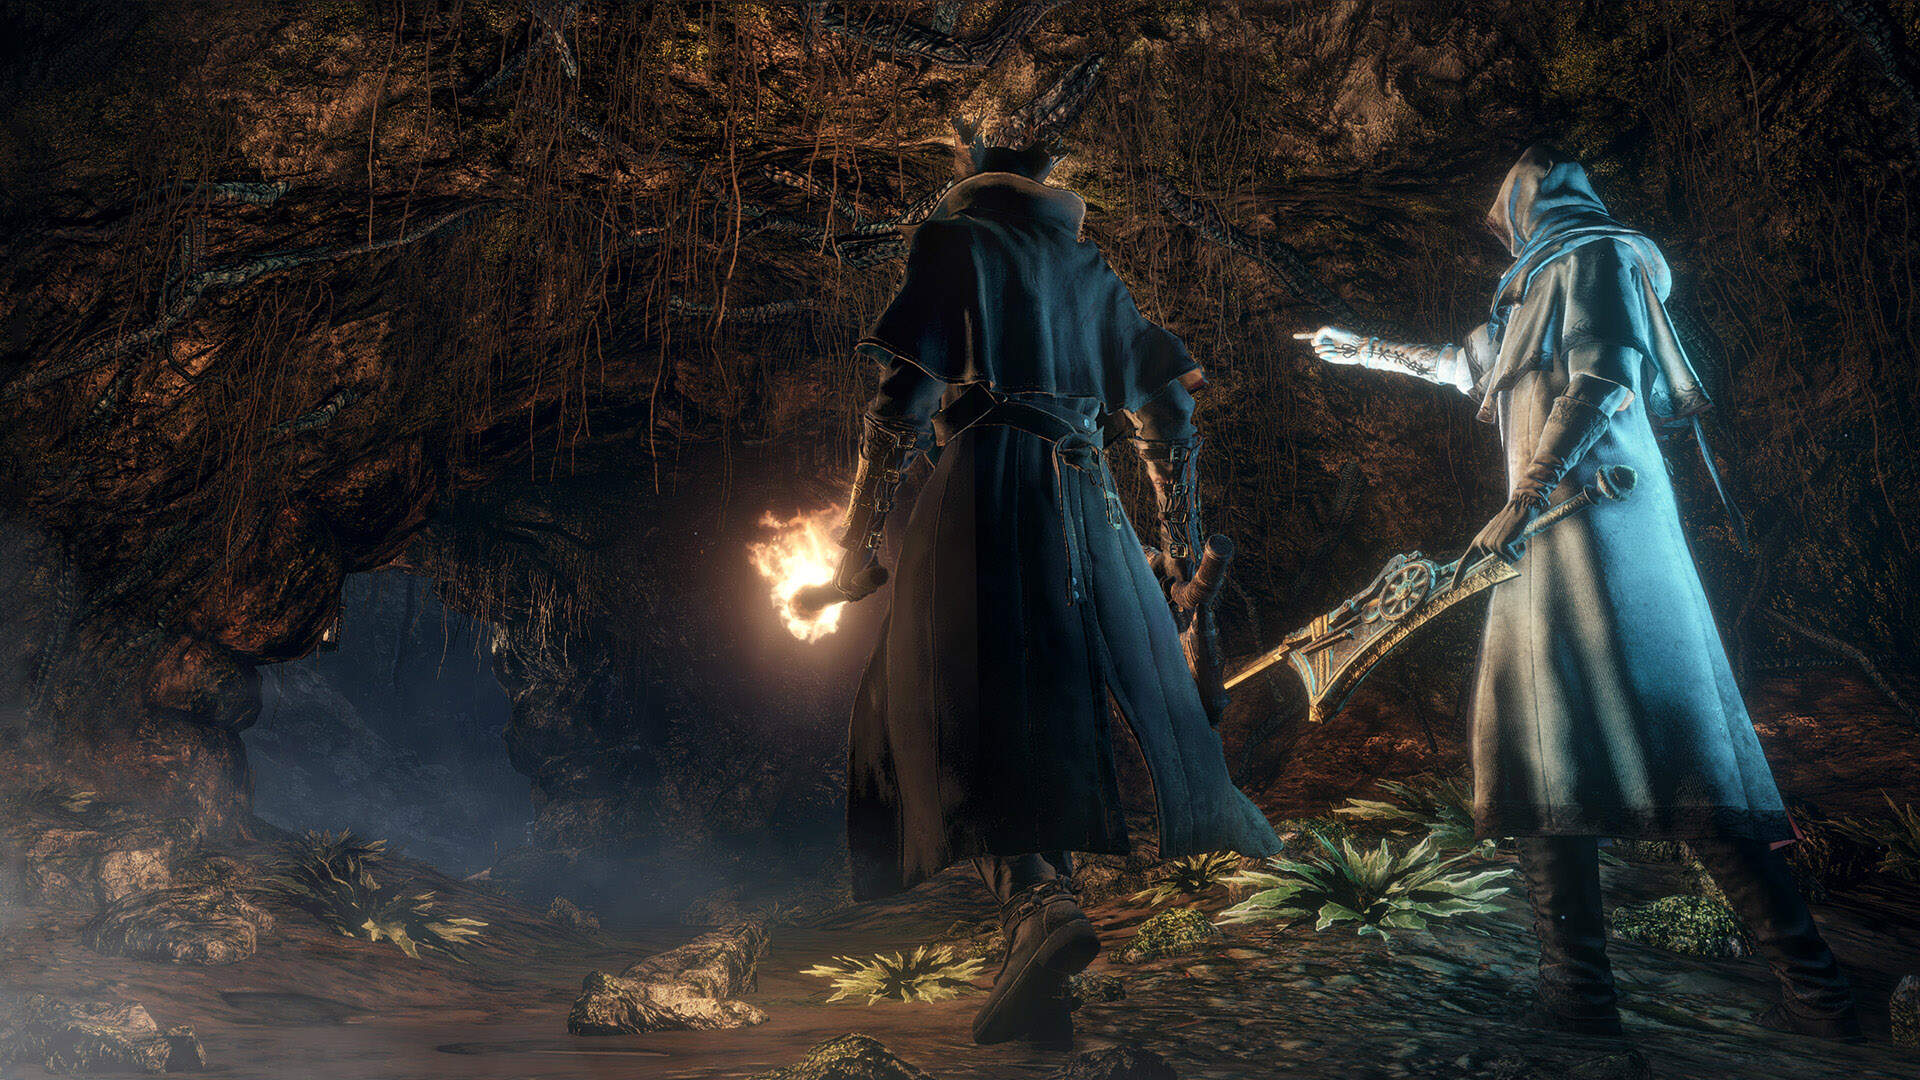 Bloodborne Best Weapons - The Top Weapons in Bloodborne